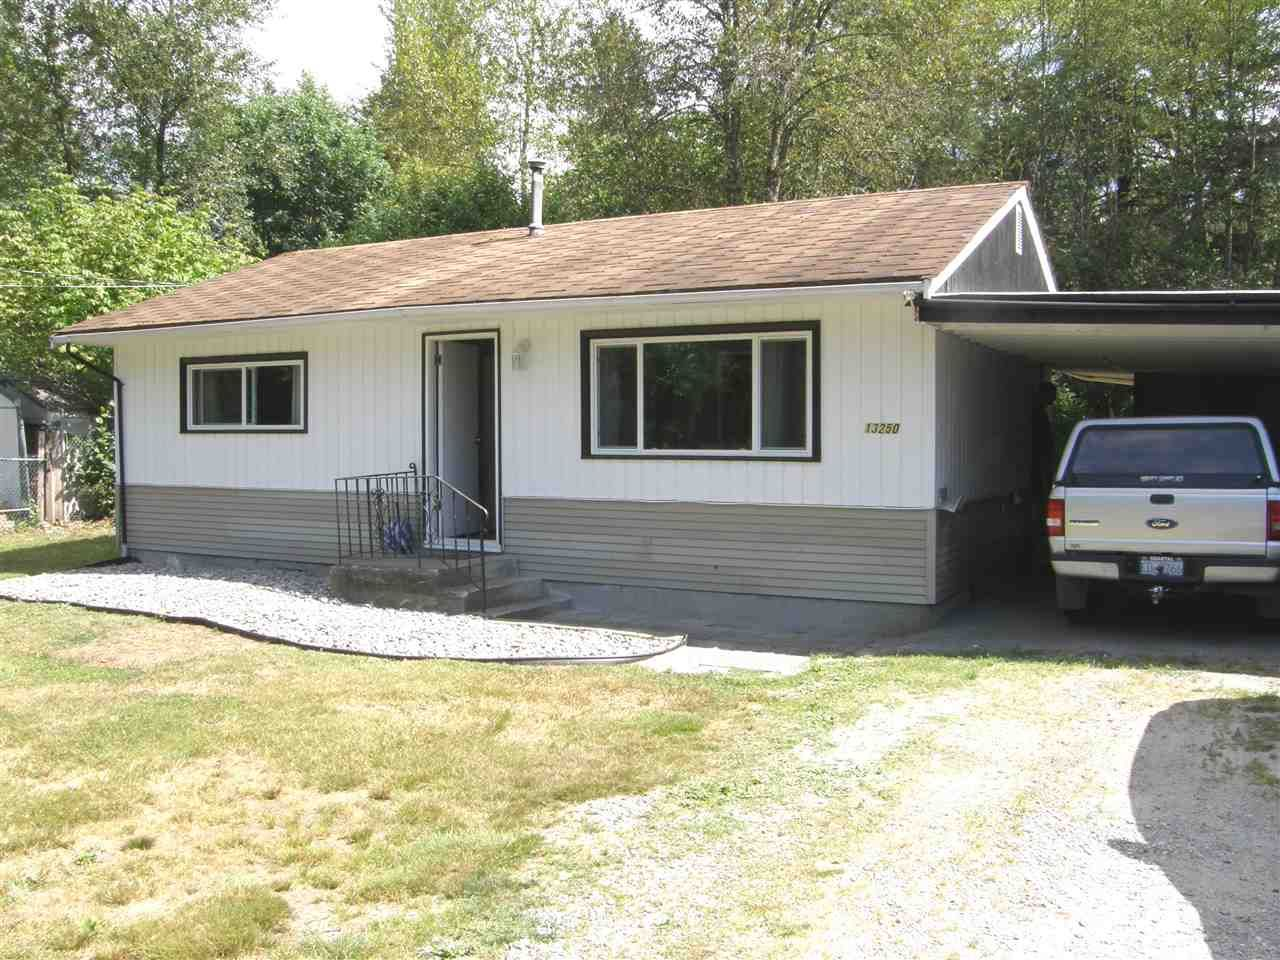 """Main Photo: 13250 233 Street in Maple Ridge: Silver Valley House for sale in """"SILVER VALLEY"""" : MLS®# R2198632"""